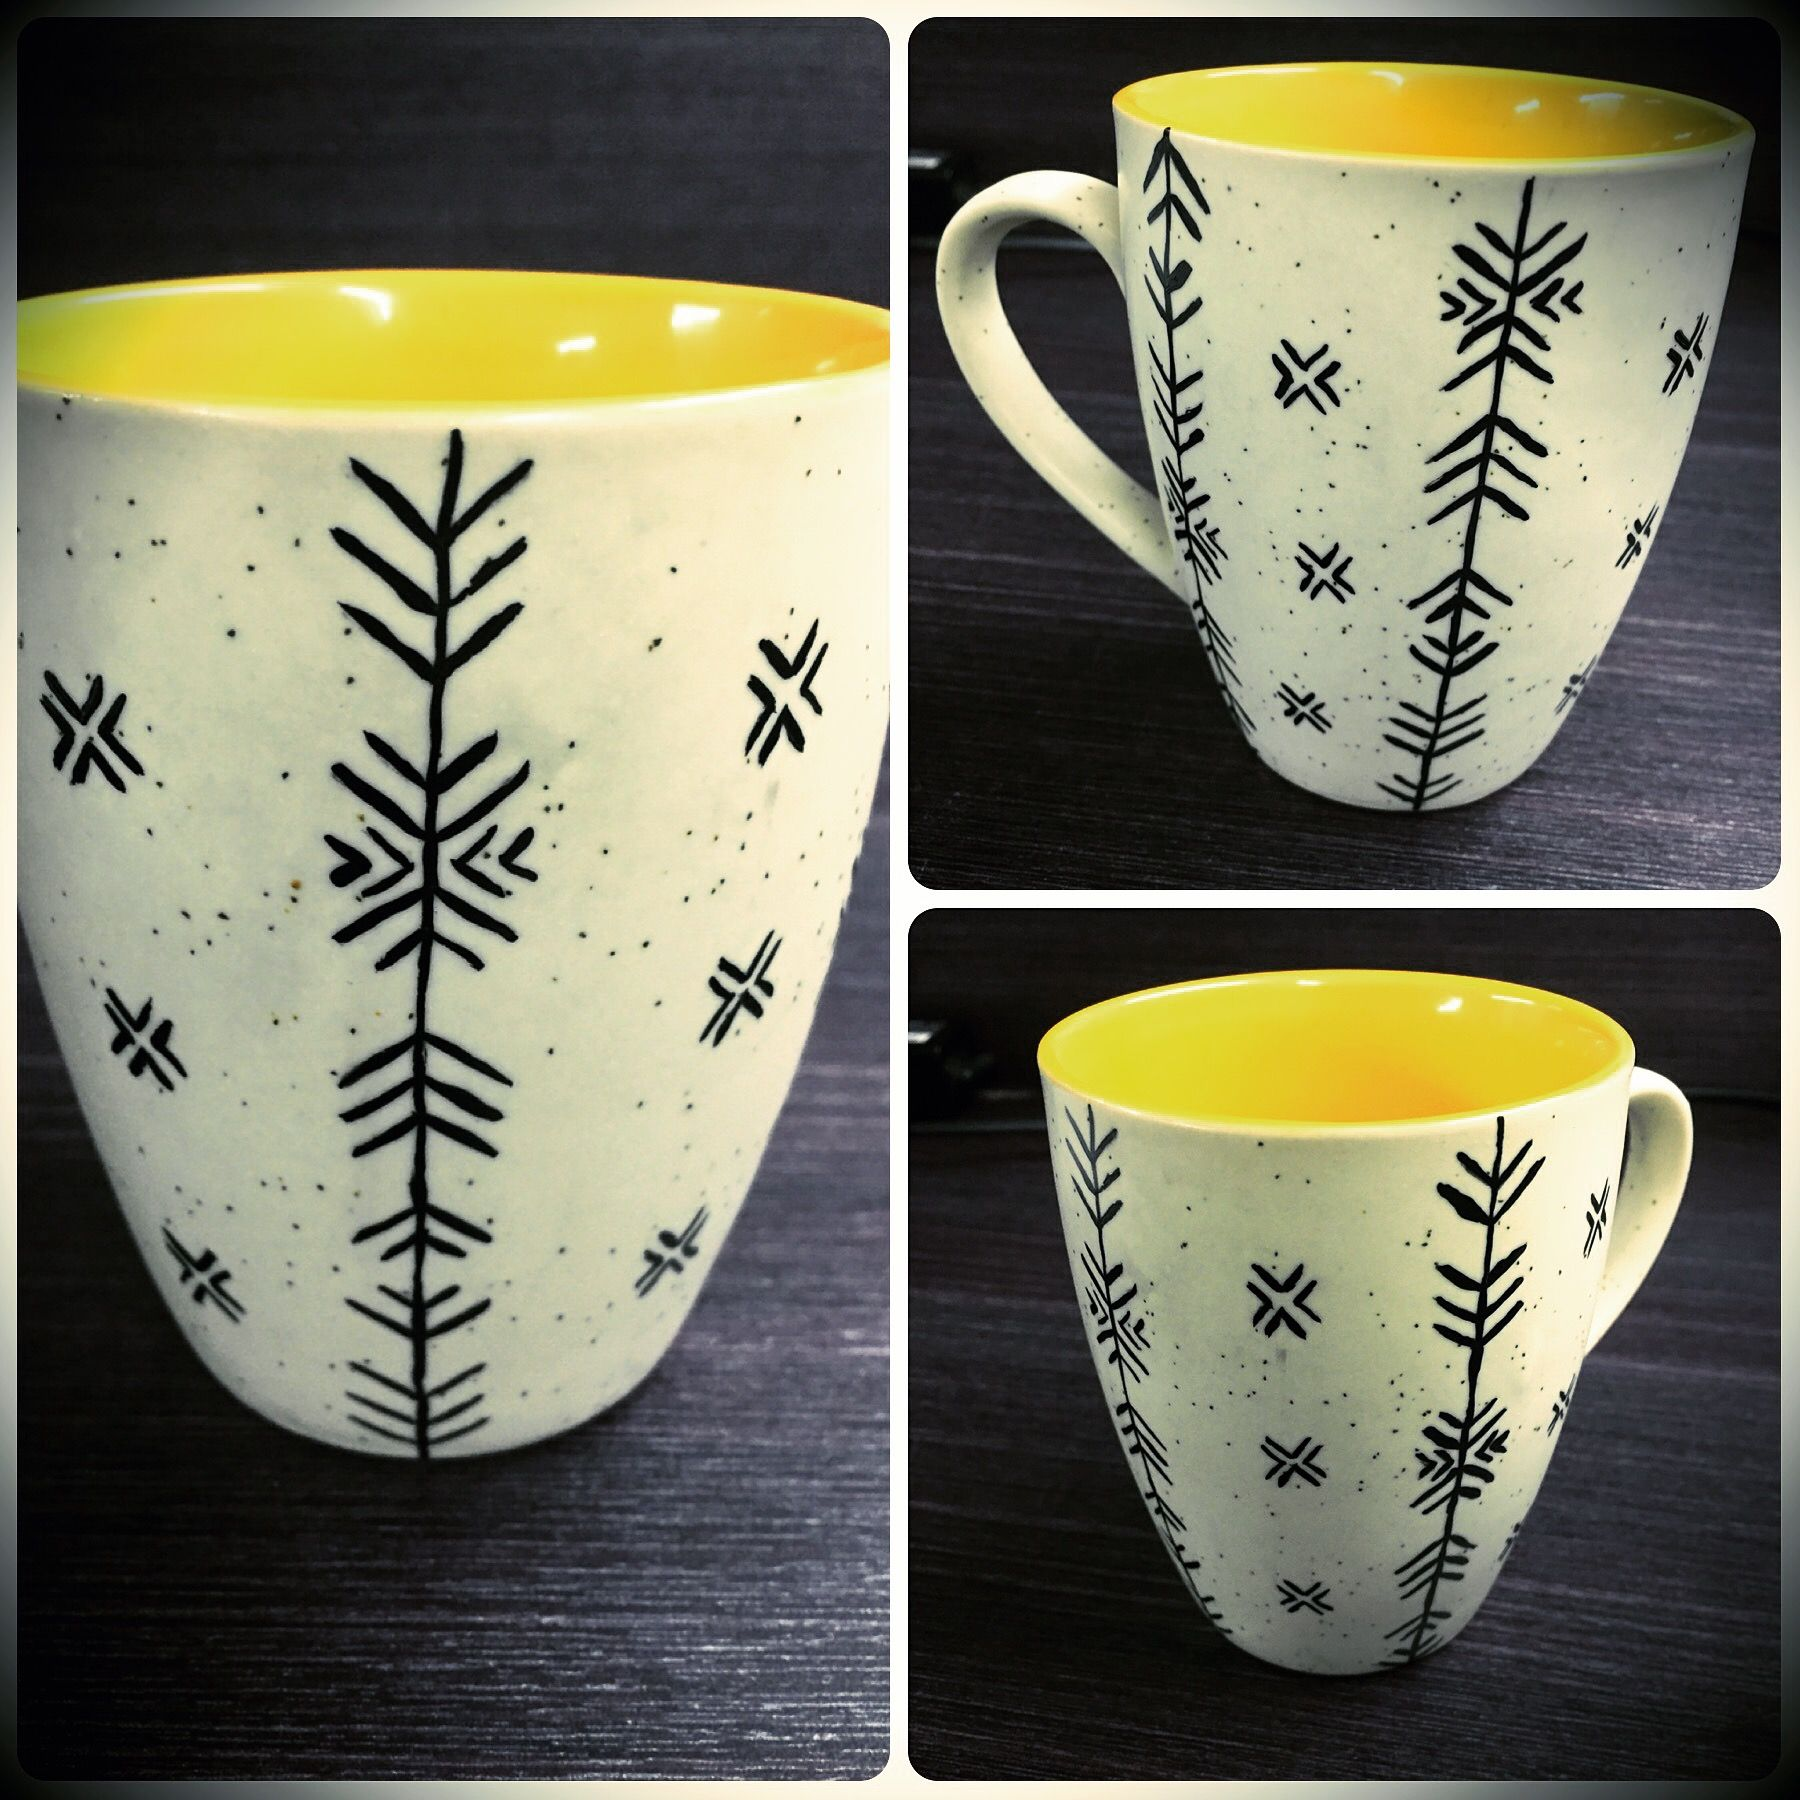 # artistonpinterest #pinoftheday #artistoninstagram #painting #artistic #artist #art #creativity #create #acrylicpaint #acryliccolors #paintingoftheday #mug #coffee #brushes #postoftheday #instamood #instagood #love #storiesofawildflower